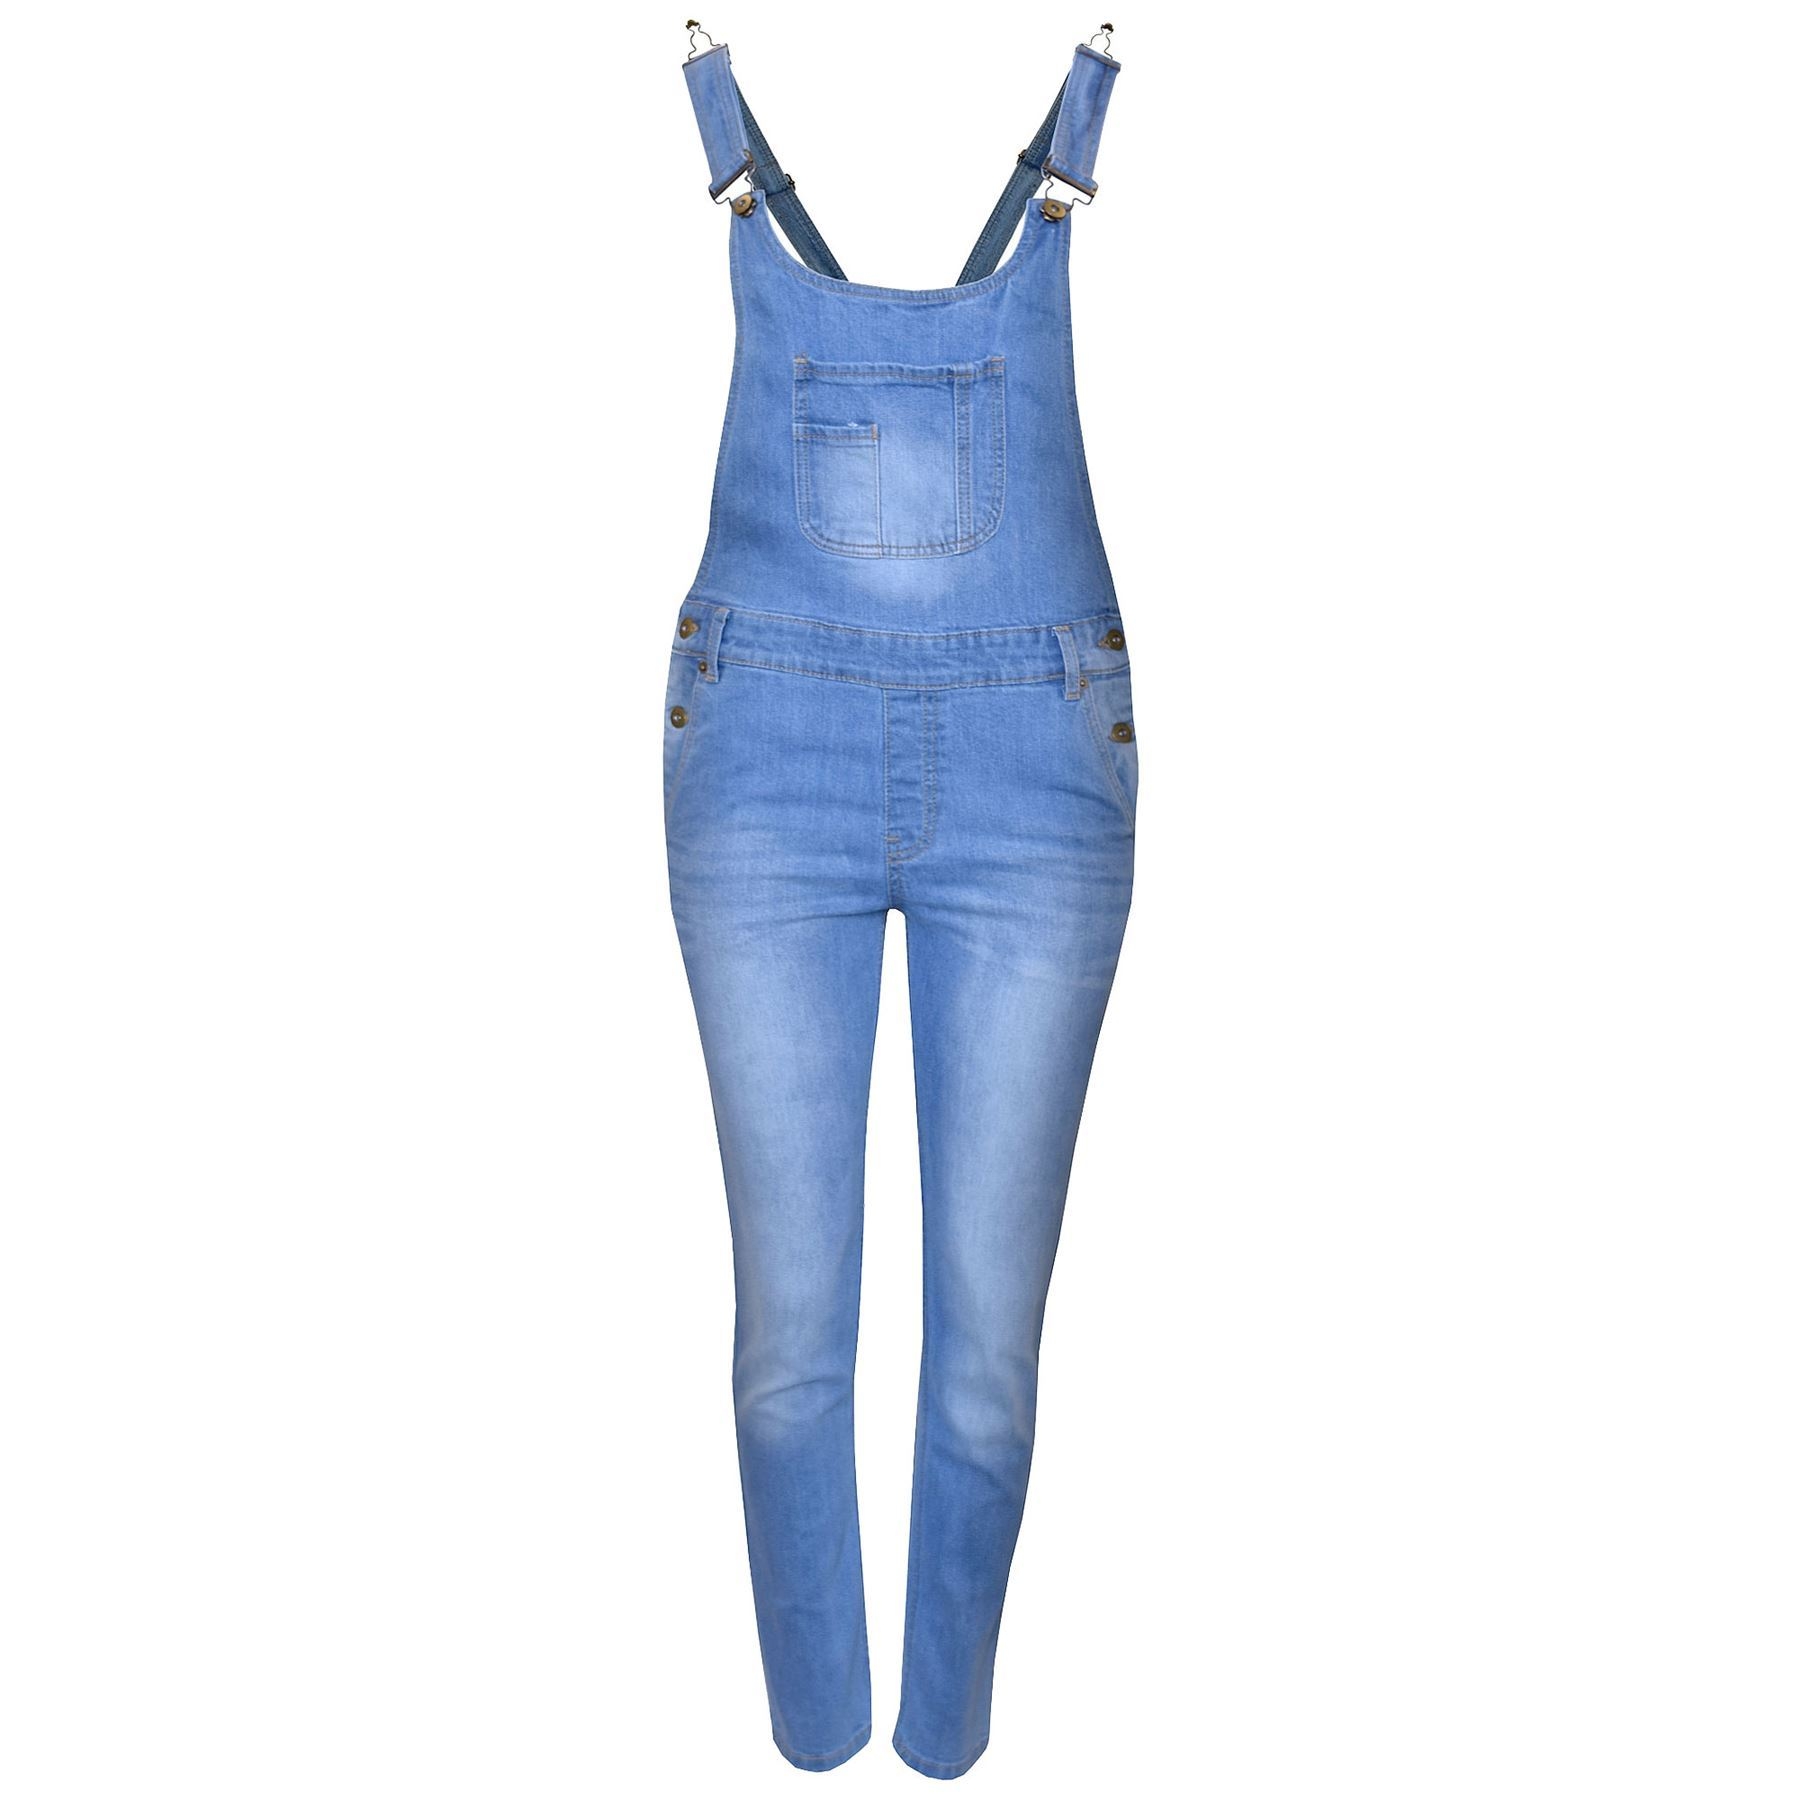 View All Dresses Jumpsuits and Rompers Tops Top and Bottom Sets Jeans Pants and Leggings Coordinates Shorts Jackets and Outerwear Pajamas Underwear Girls X View All Dresses Jumpsuits and Rompers Tops Top and Bottom Sets Jeans Pants and Leggings Shorts Jackets and Outerwear Pajamas Underwear.